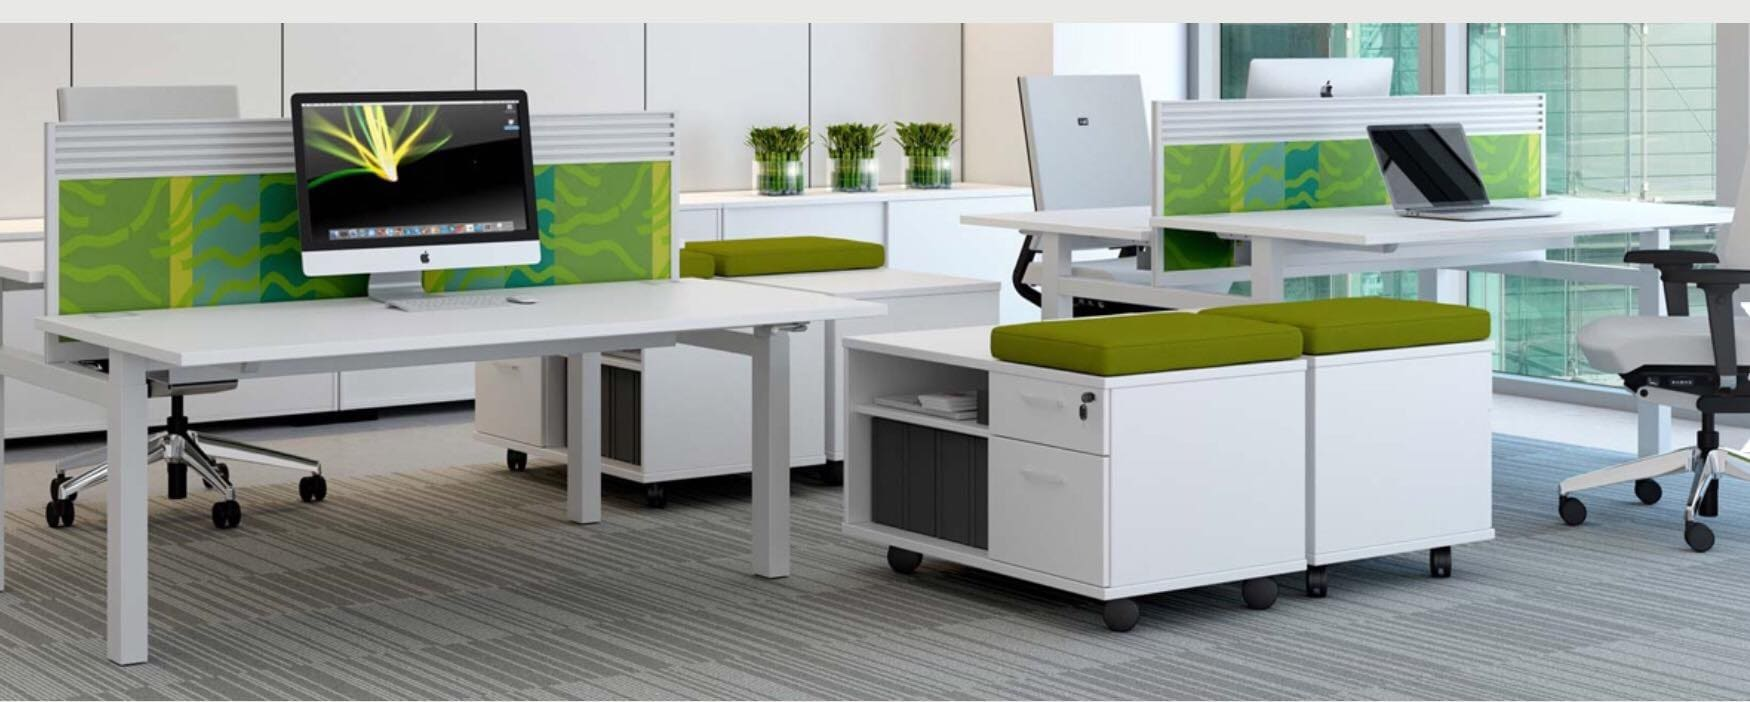 75 Office Furniture Online Nsw Full Image For Ideal